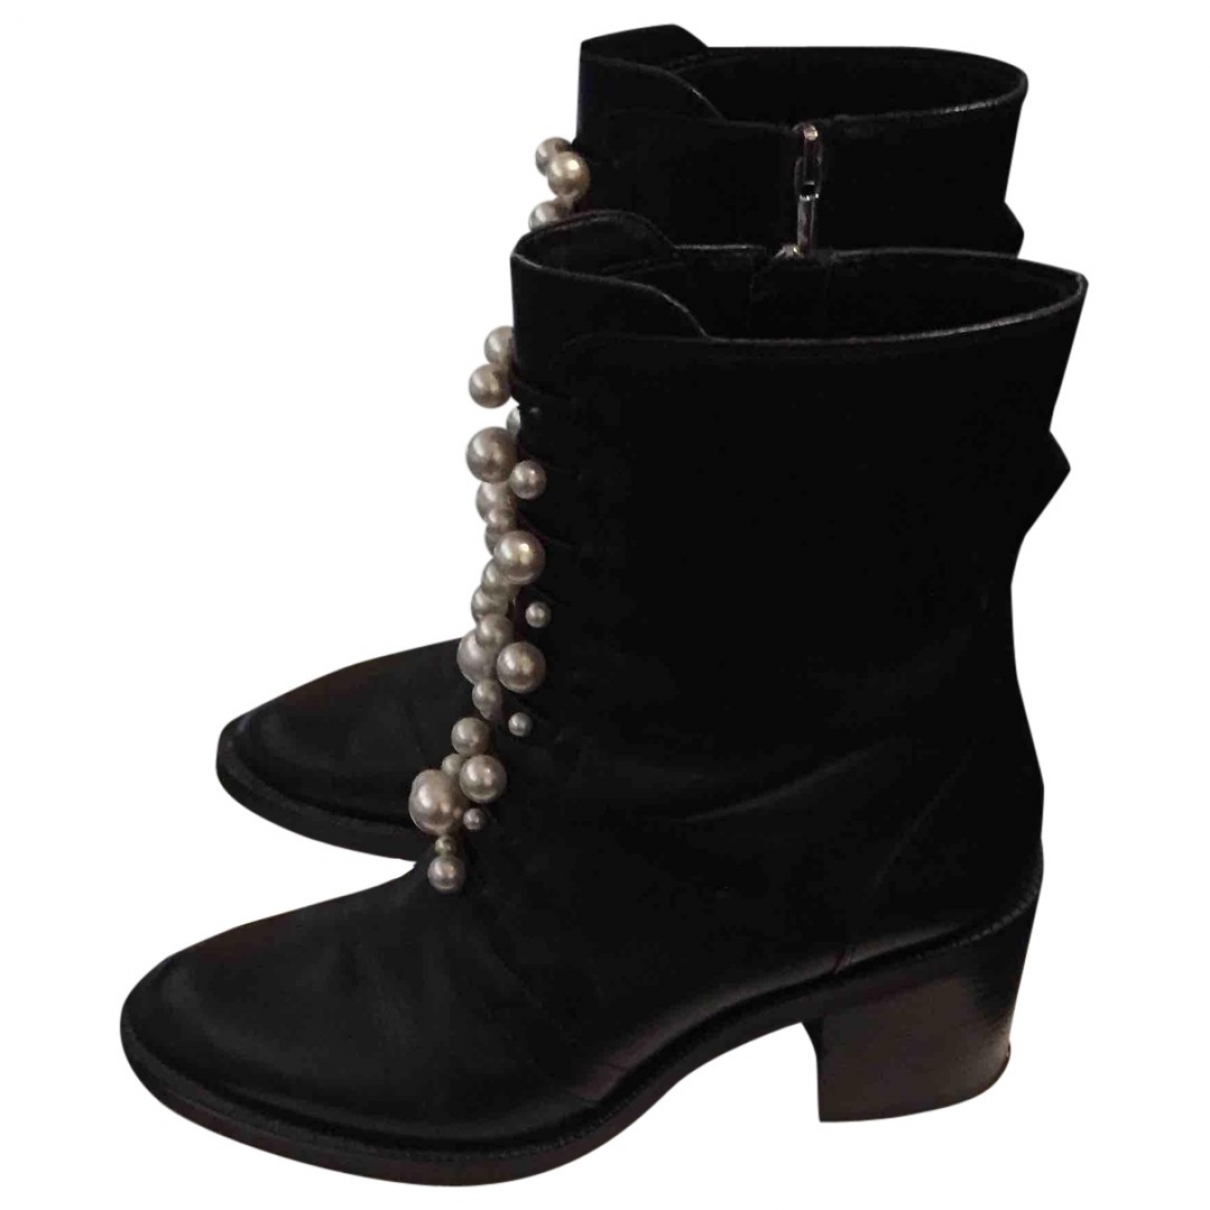 Zara \N Black Leather Boots for Women 39 EU